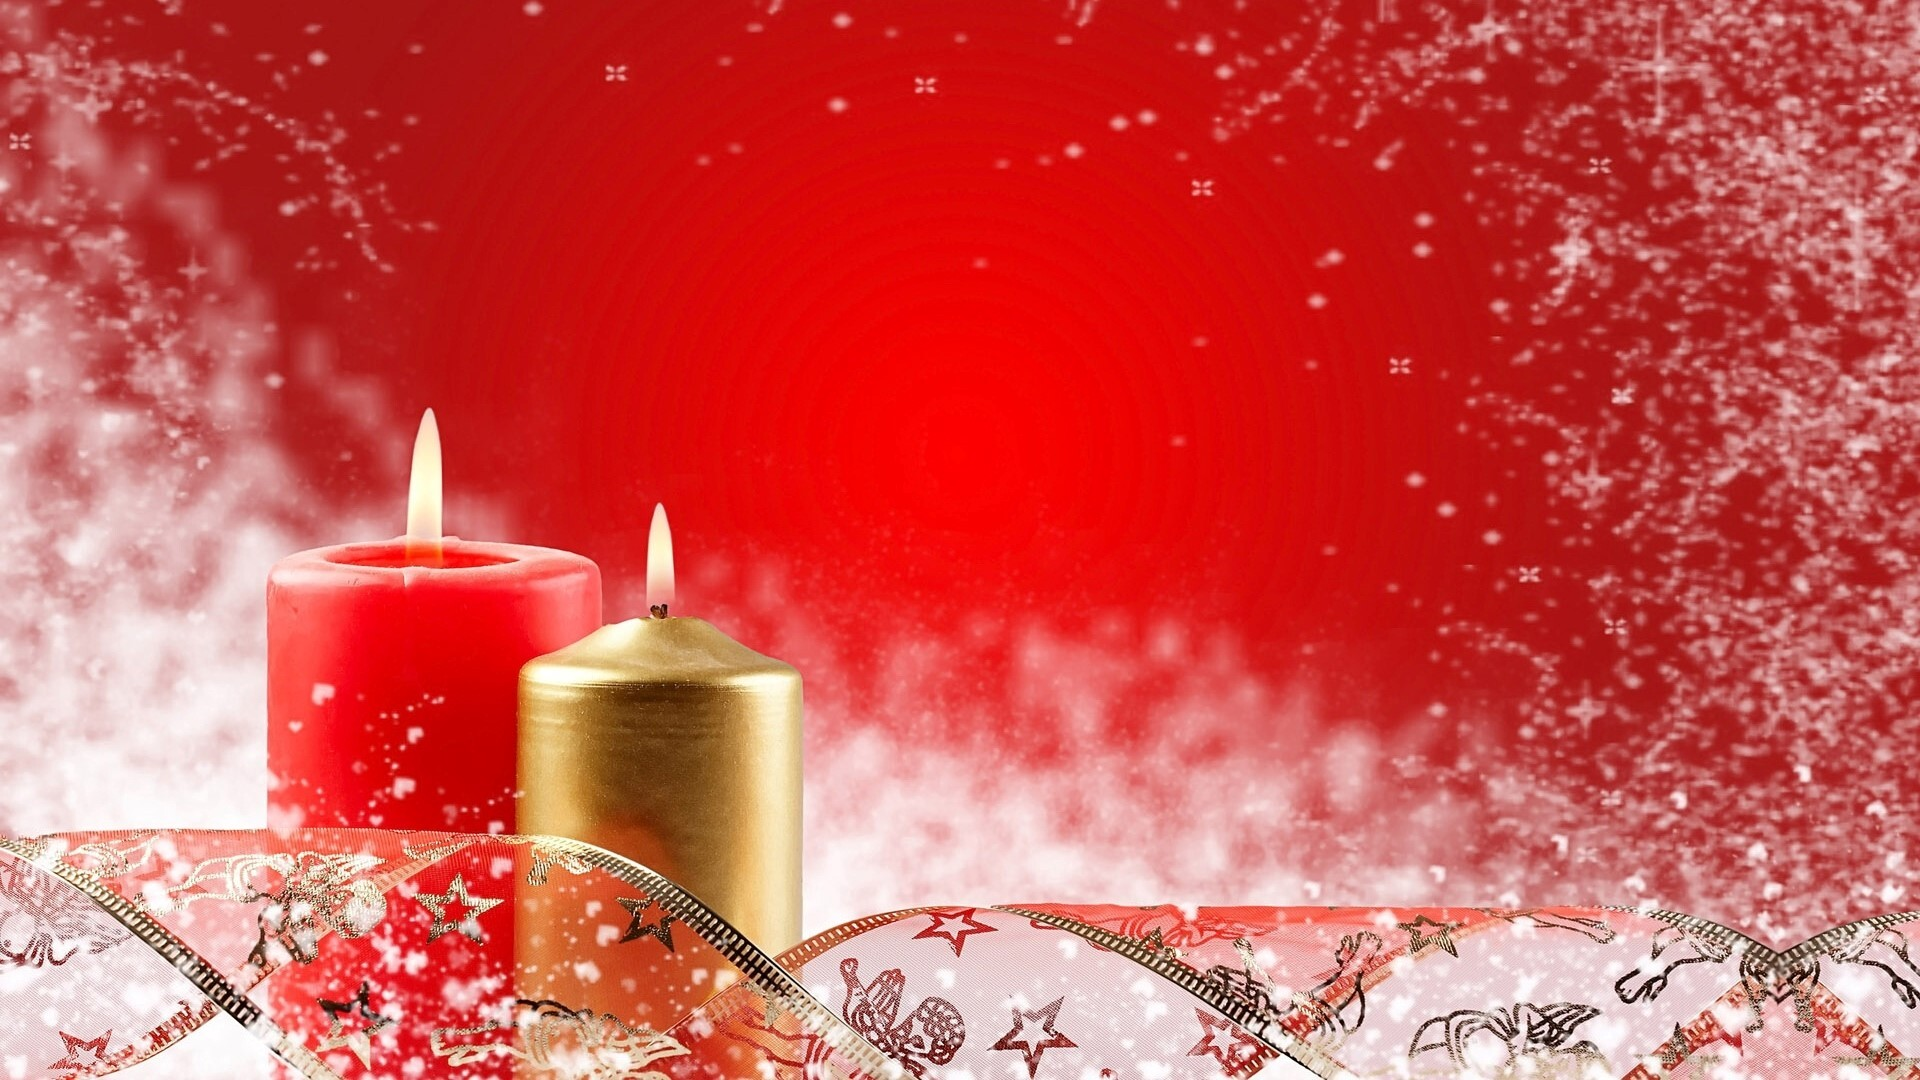 Christmas Background Hd Images.Hd Christmas Background Image Hd Wallpapers